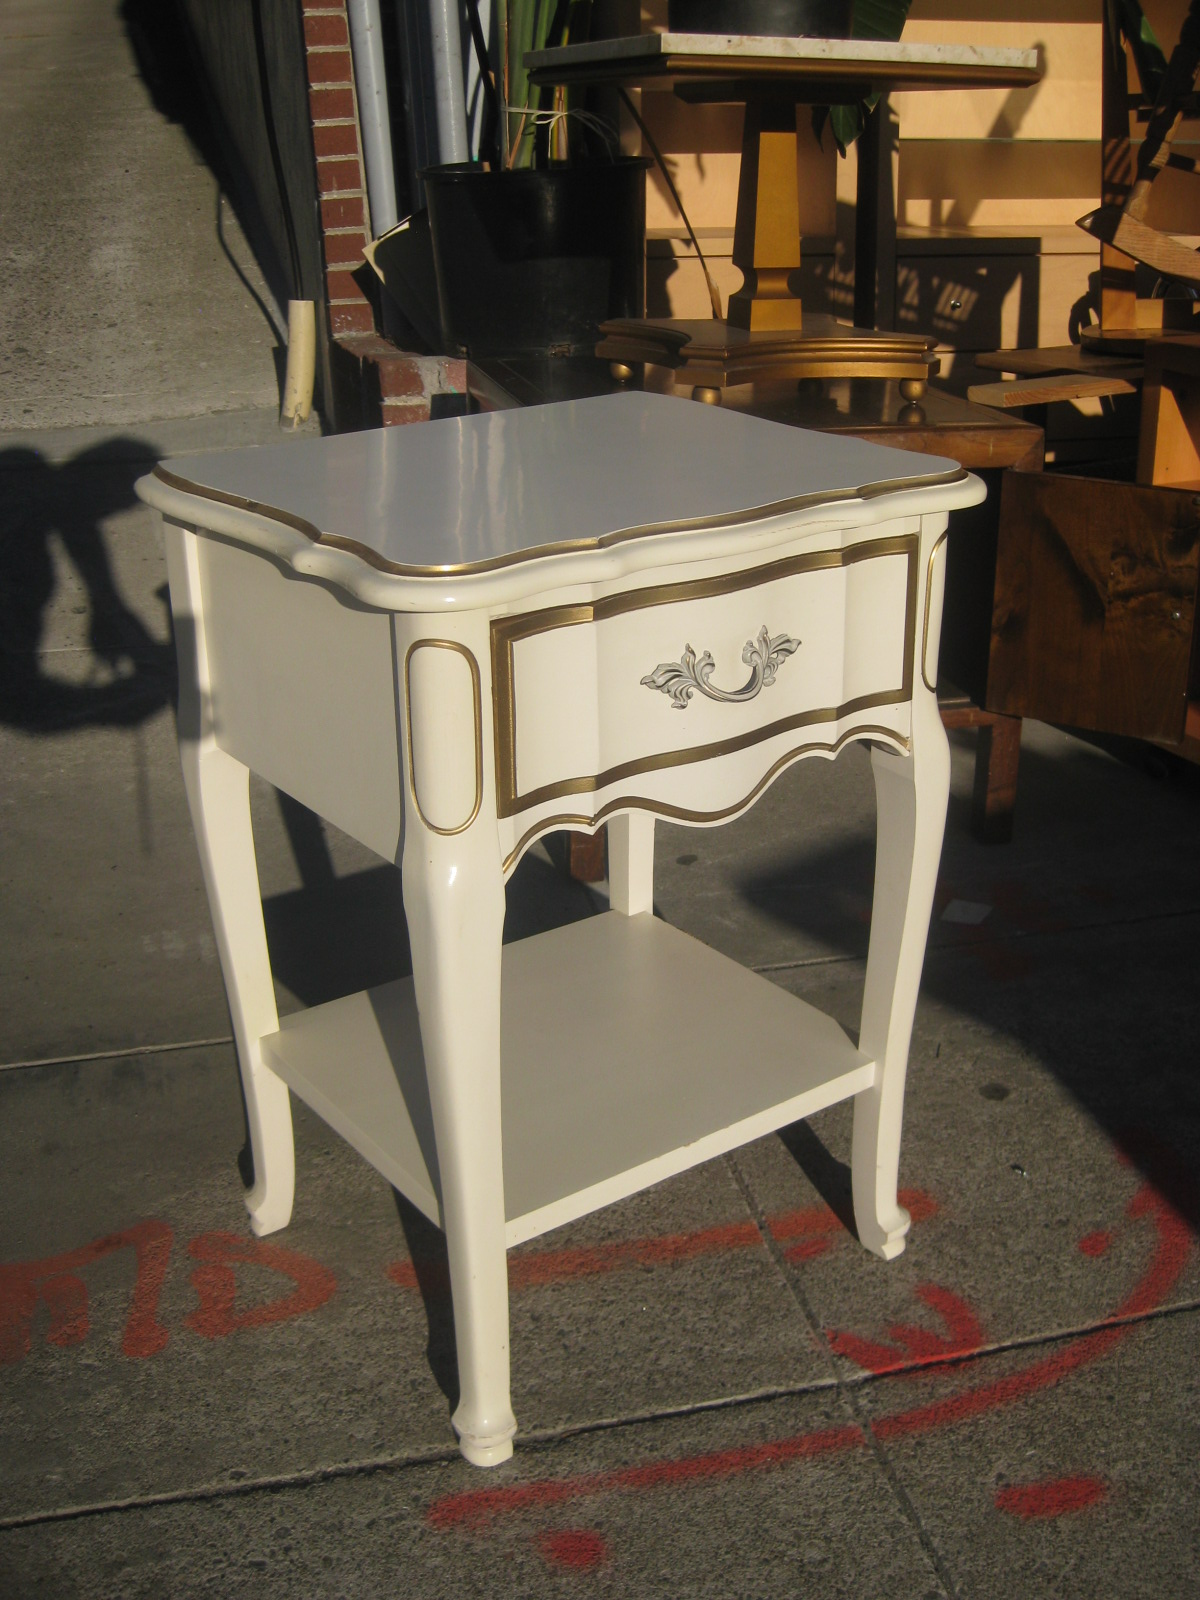 UHURU FURNITURE & COLLECTIBLES SOLD French Provincial Bedroom Set $150